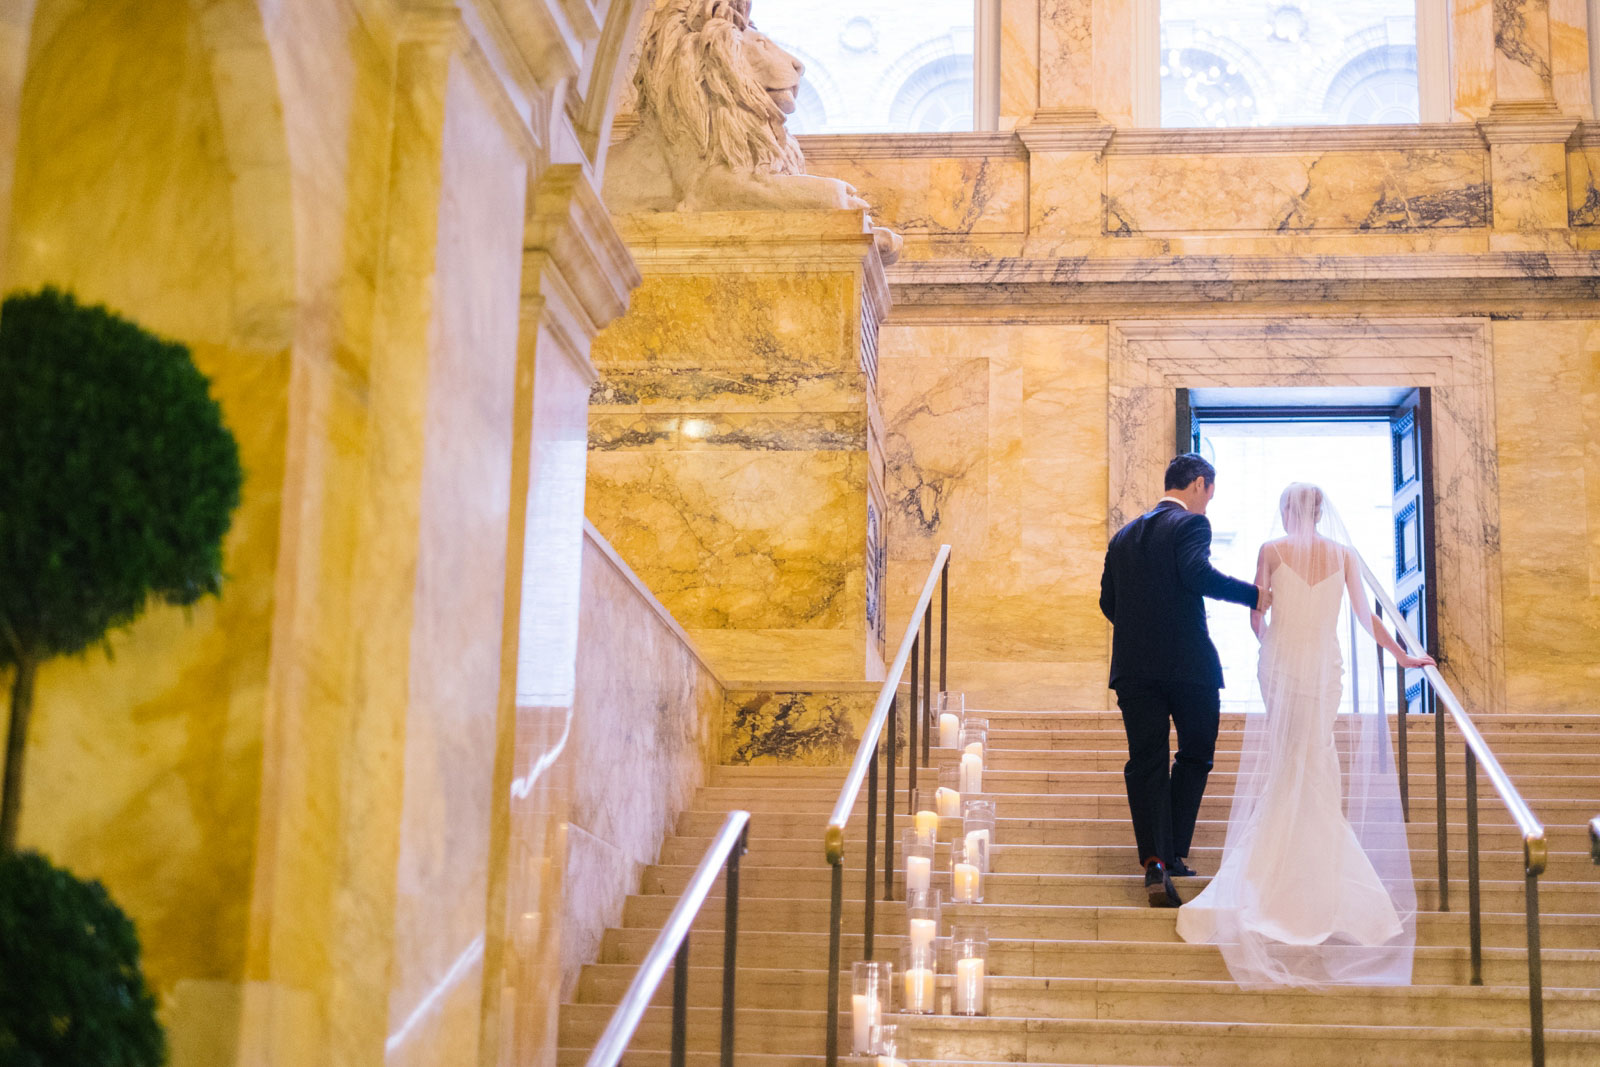 wedding portrait walking up stairs of quintessential marble staircase at Boston Public Library